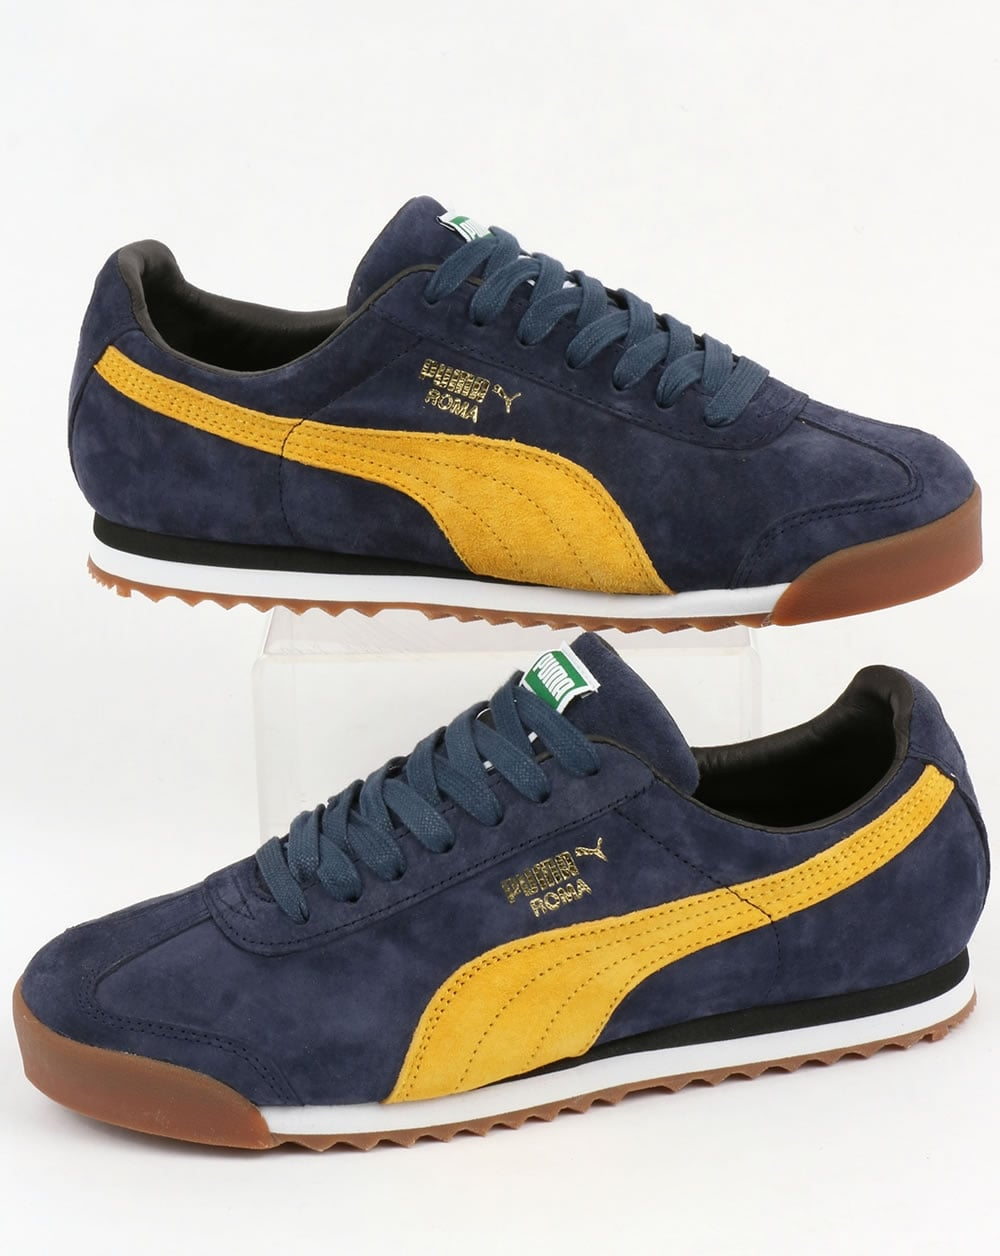 competitive price d27c5 25a3a Puma Roma Trainers Navy/Yellow